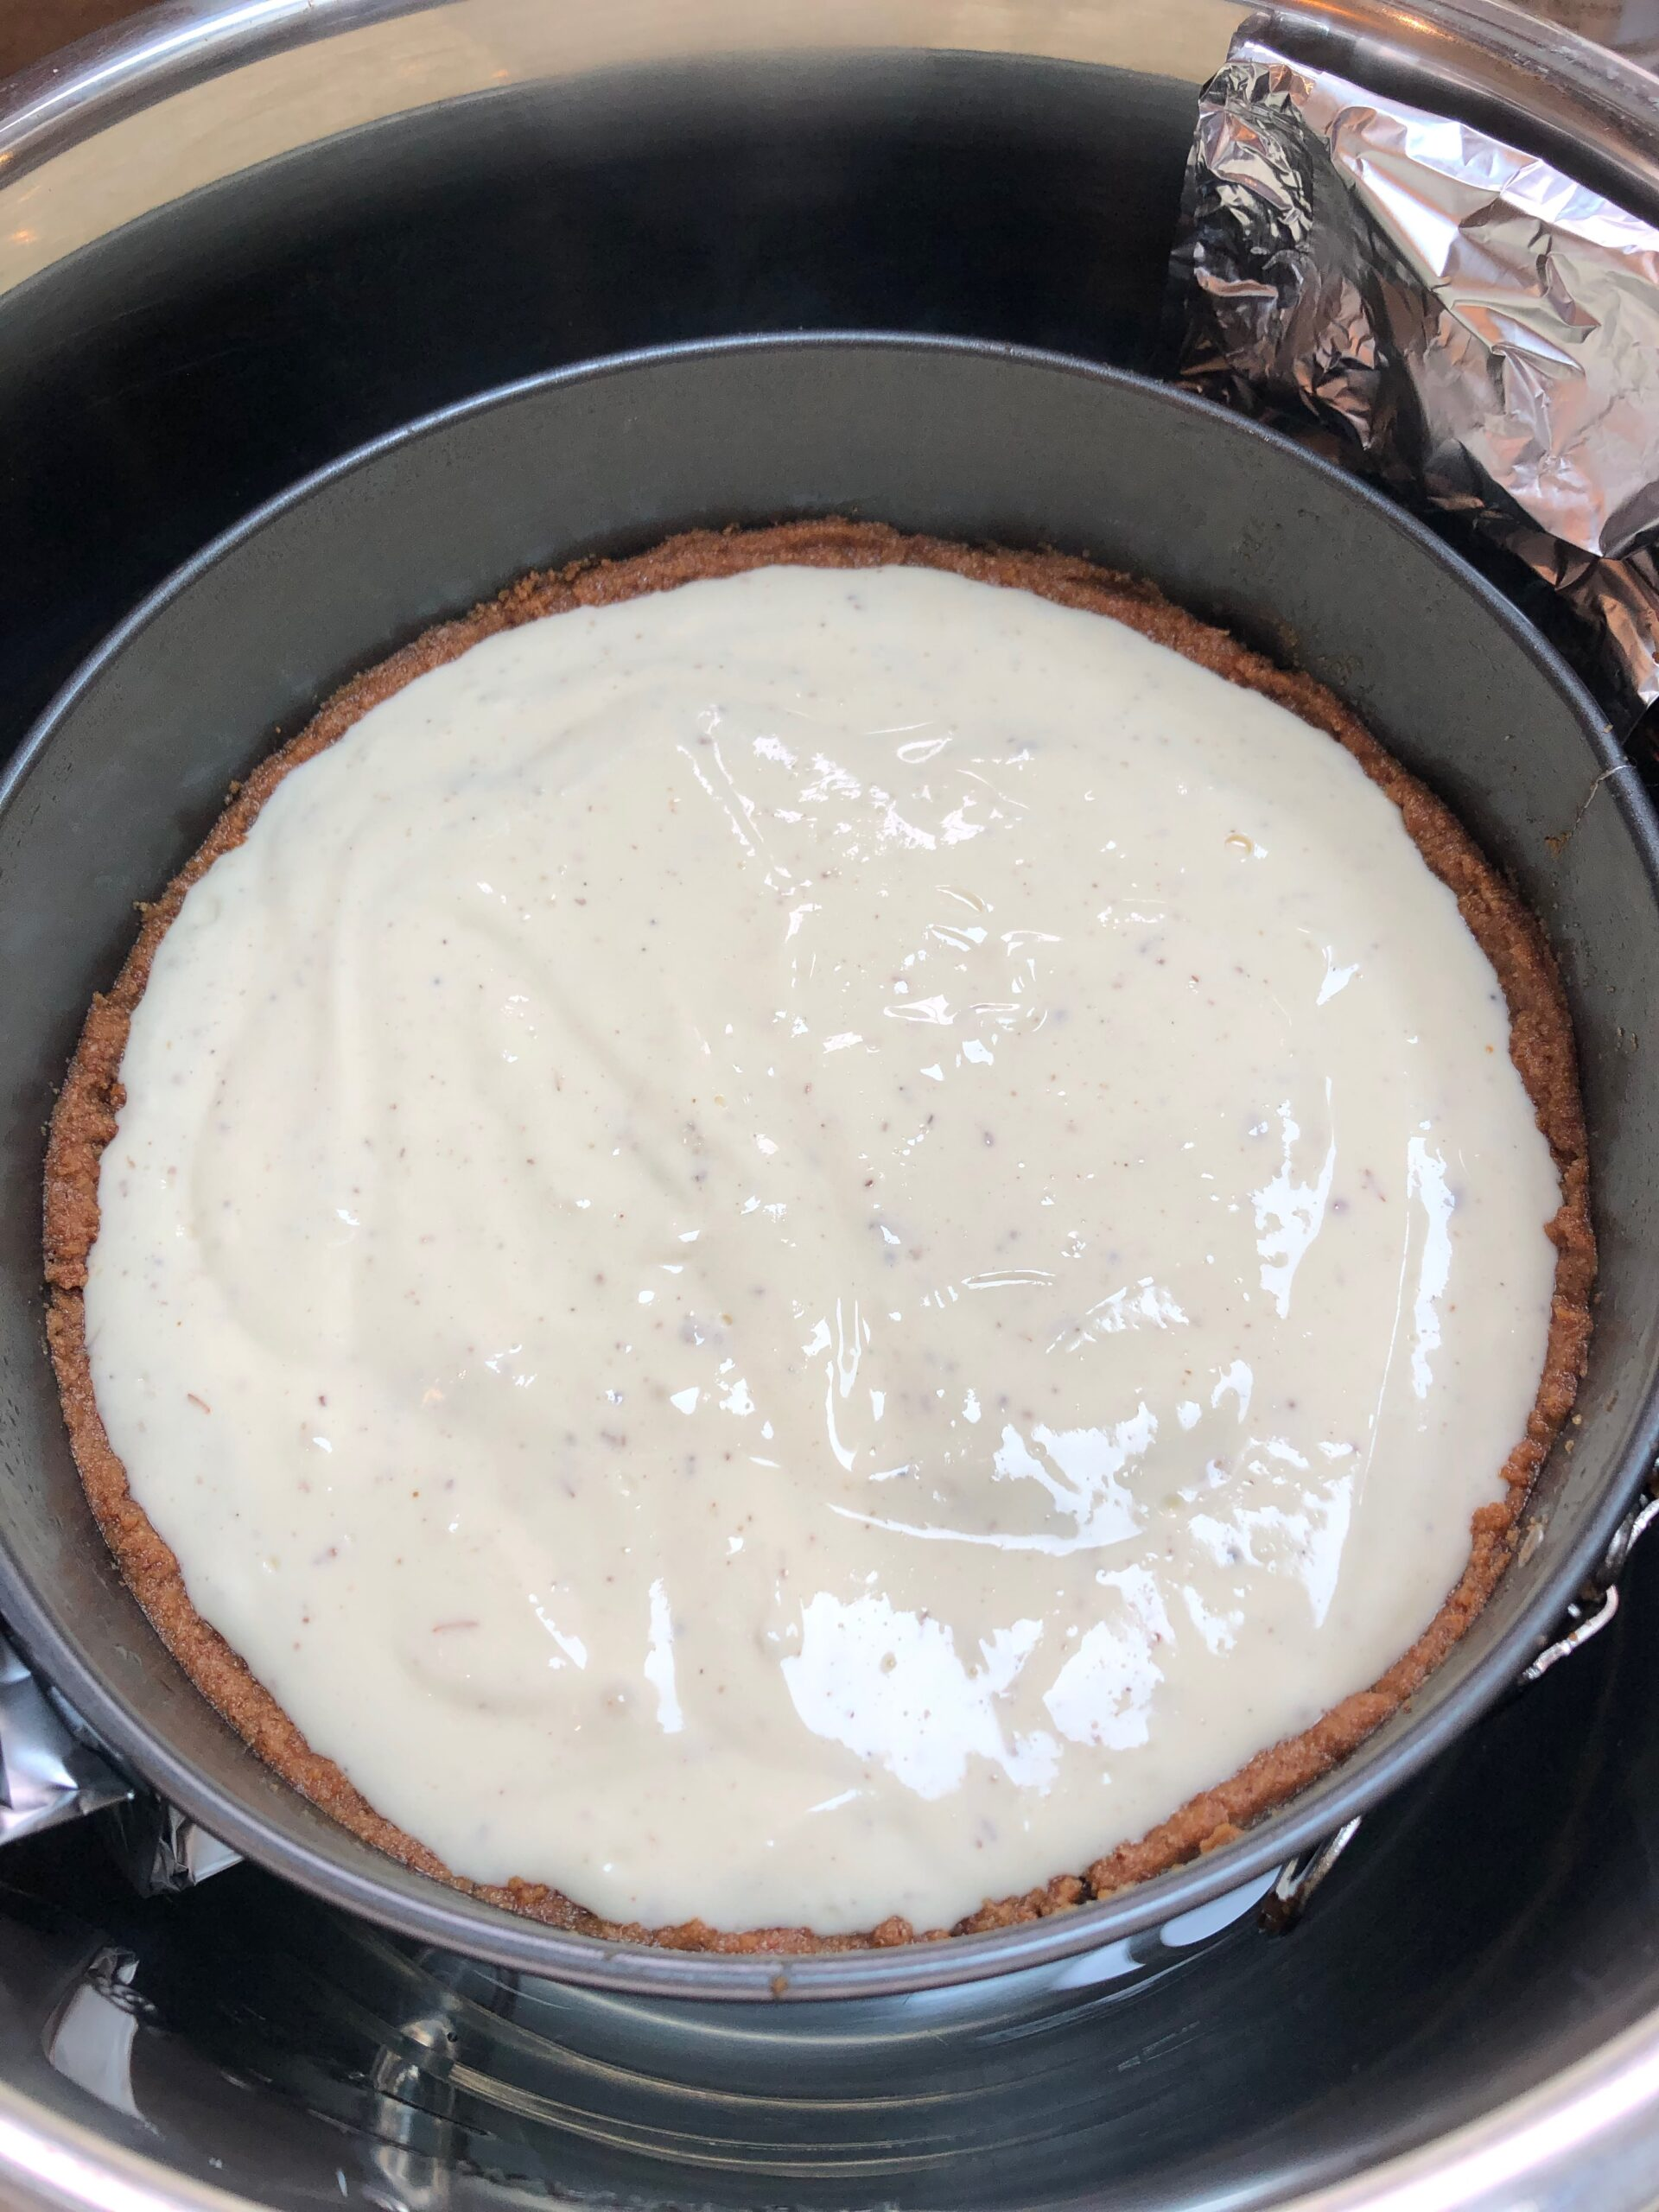 lavender cheesecake before baking in instant pot